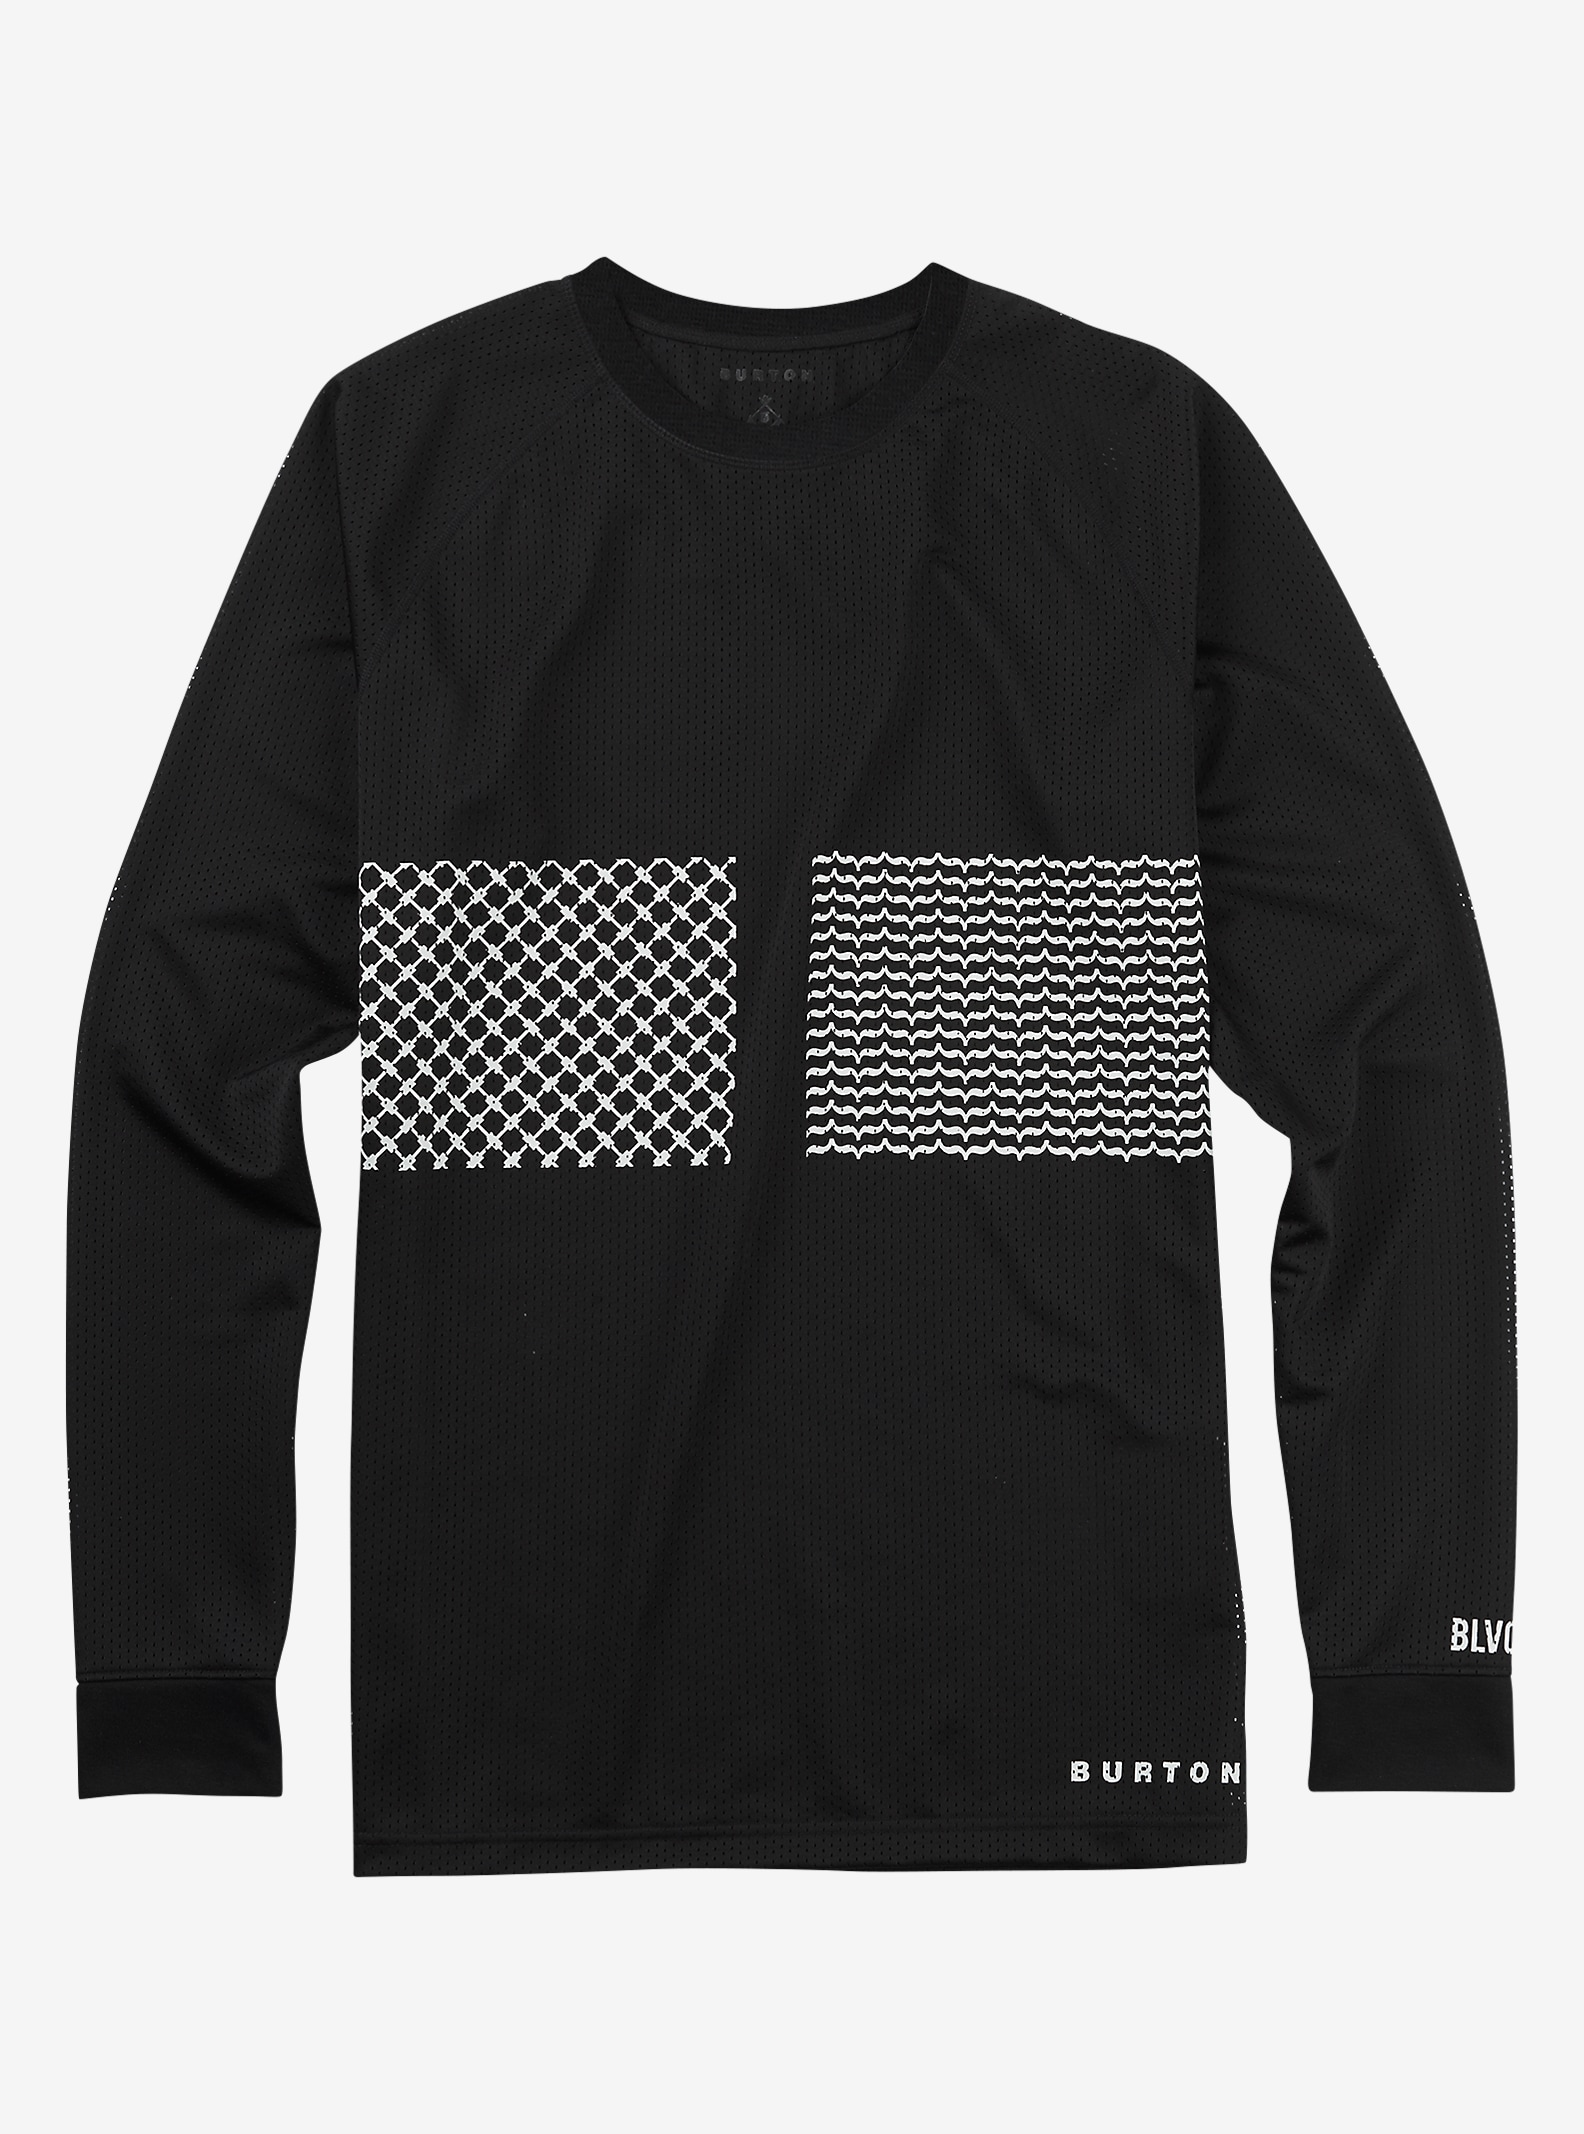 Black Scale x Burton Ransom Mesh Base Layer Tech Tee shown in Black Scale Black